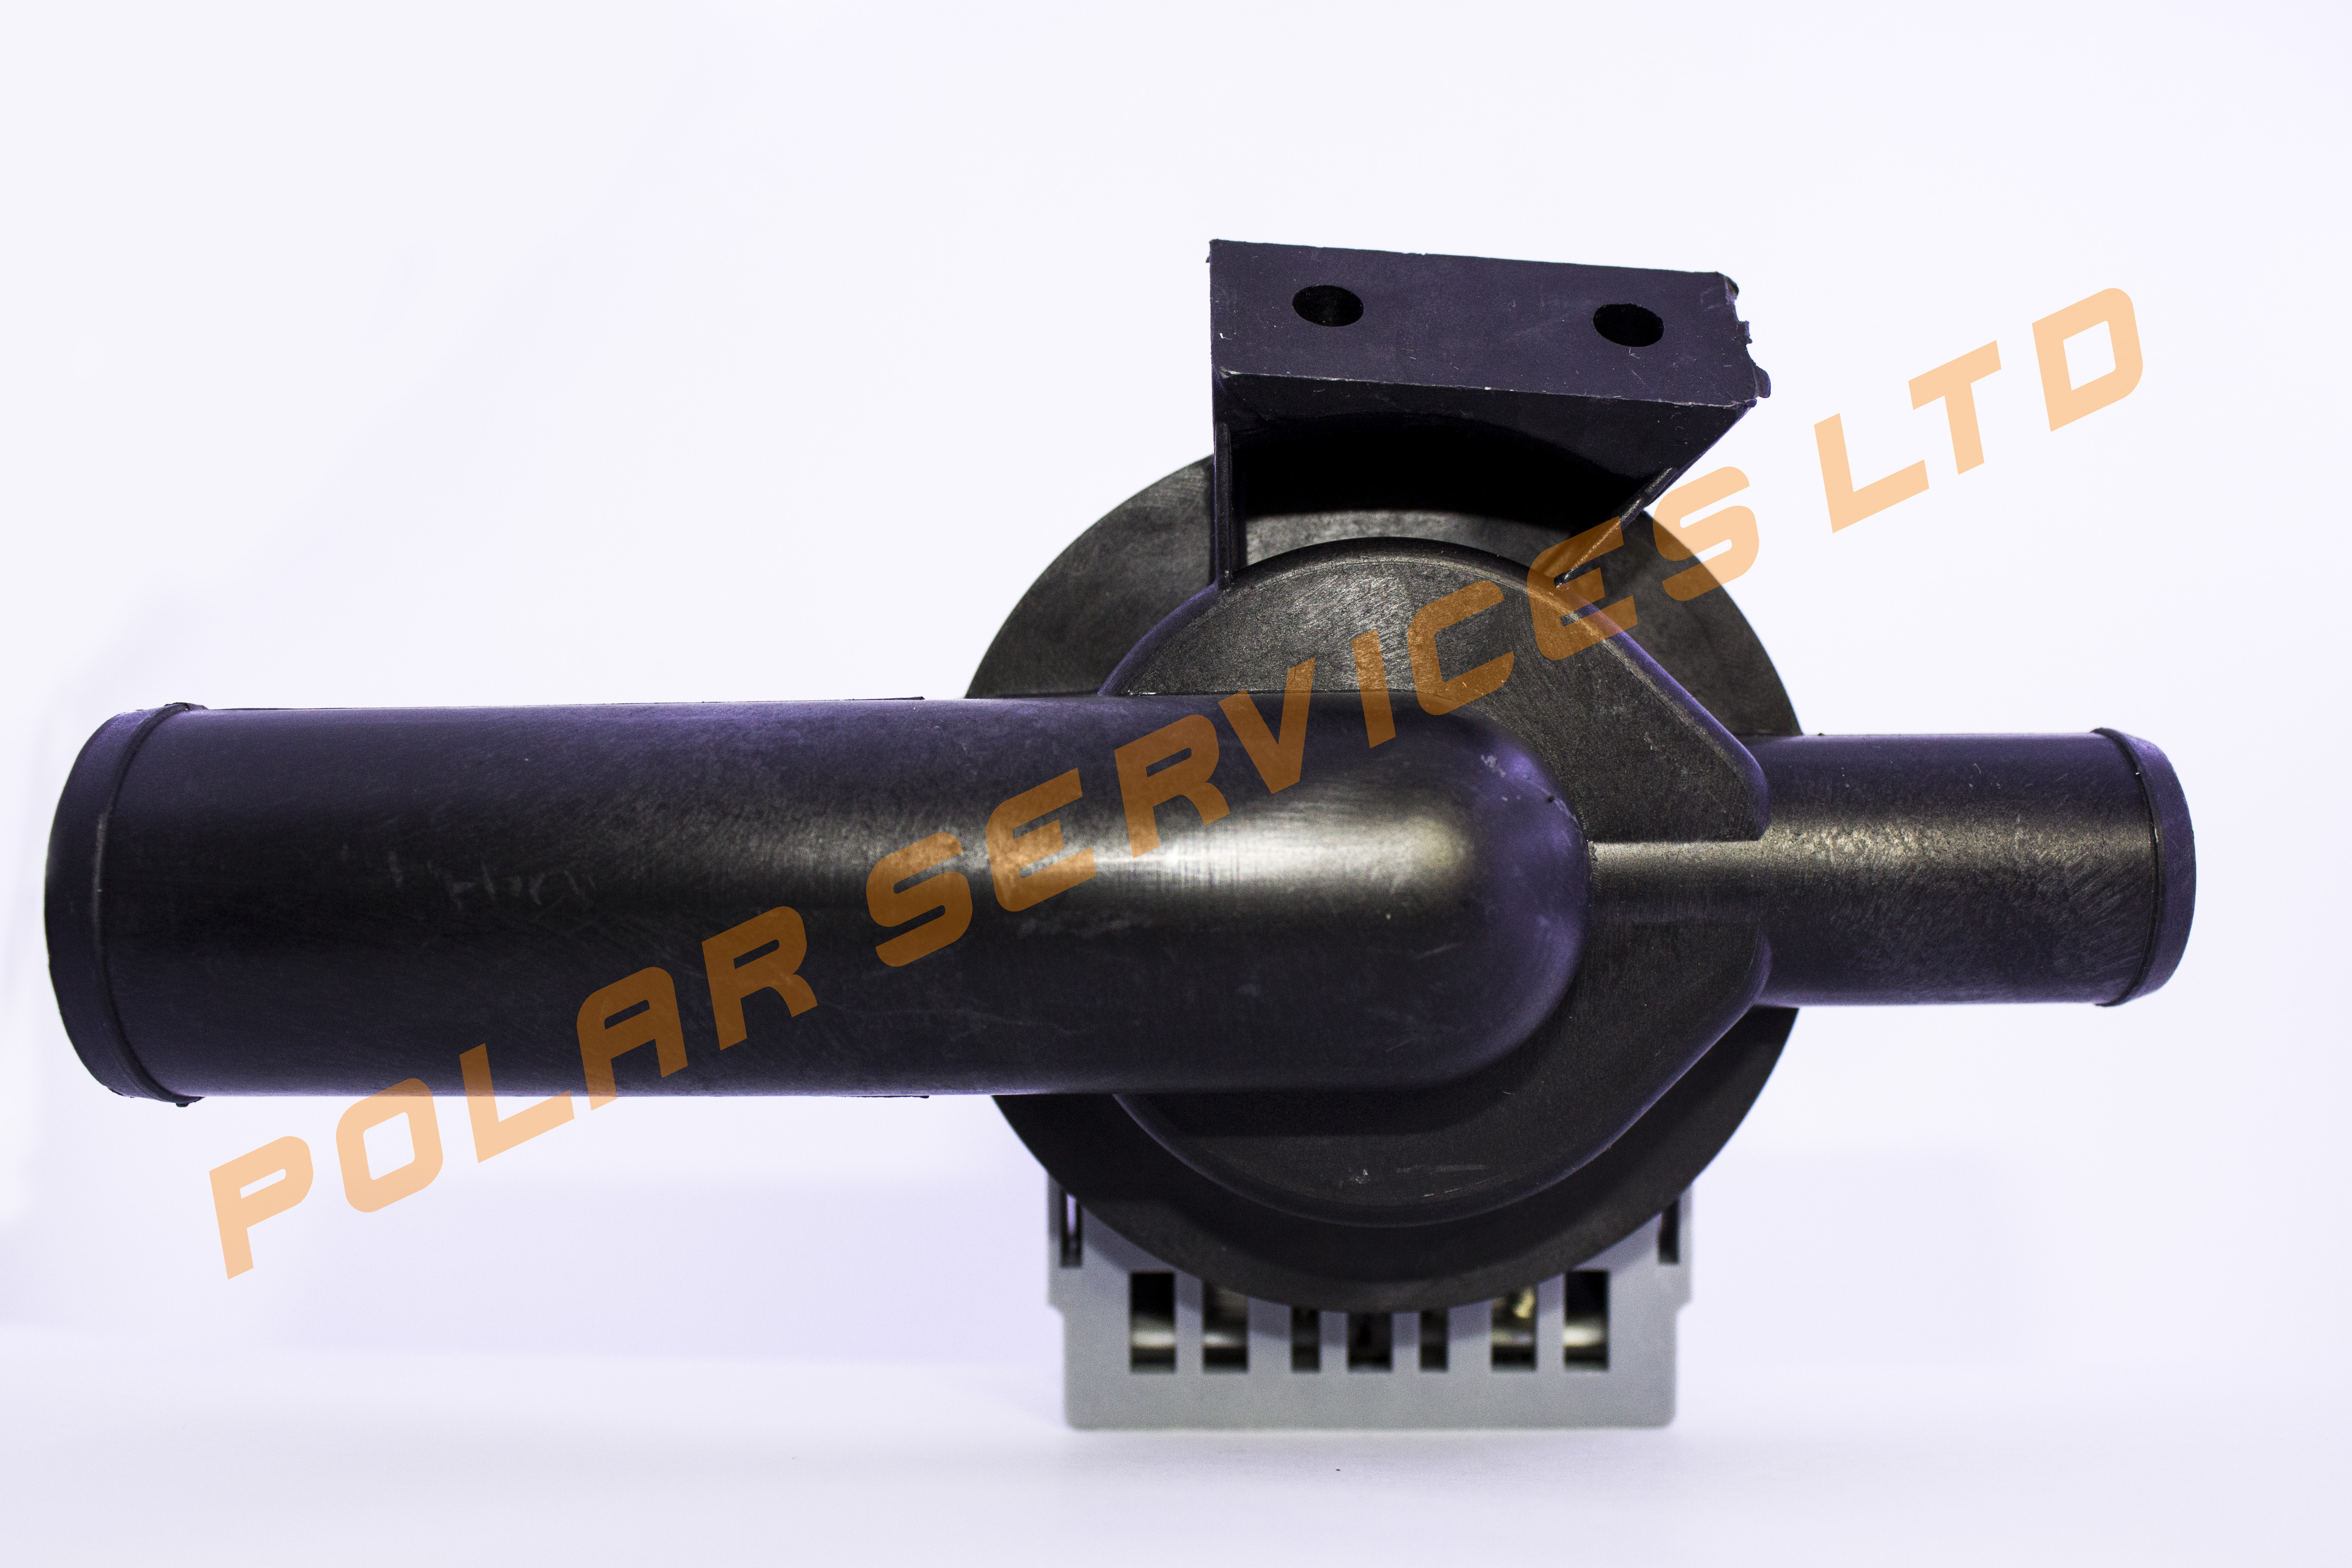 WASHING MACHINE ELECTRIC DRAIN PUMP, MAGNETIC. 34W, 220/ 240V, 50HZ - ARDO 651065724/ 518000701 - ASKOLL Malta, 								Washing Machine Malta, Polar Services LTD Malta Malta